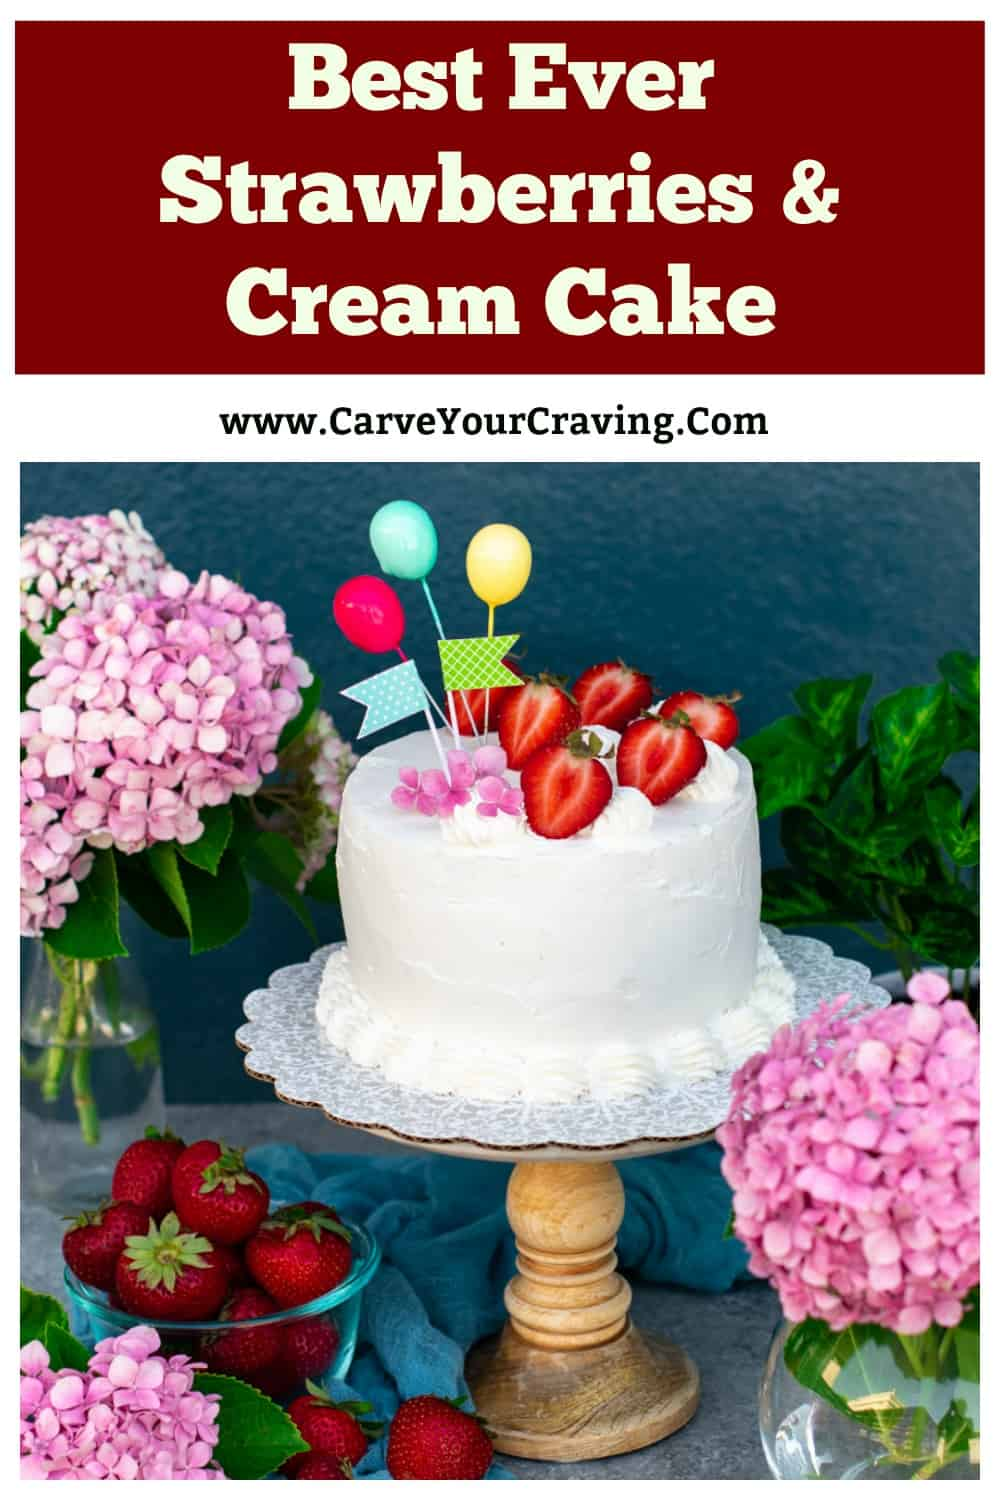 White cake with strawberries on a cake stand